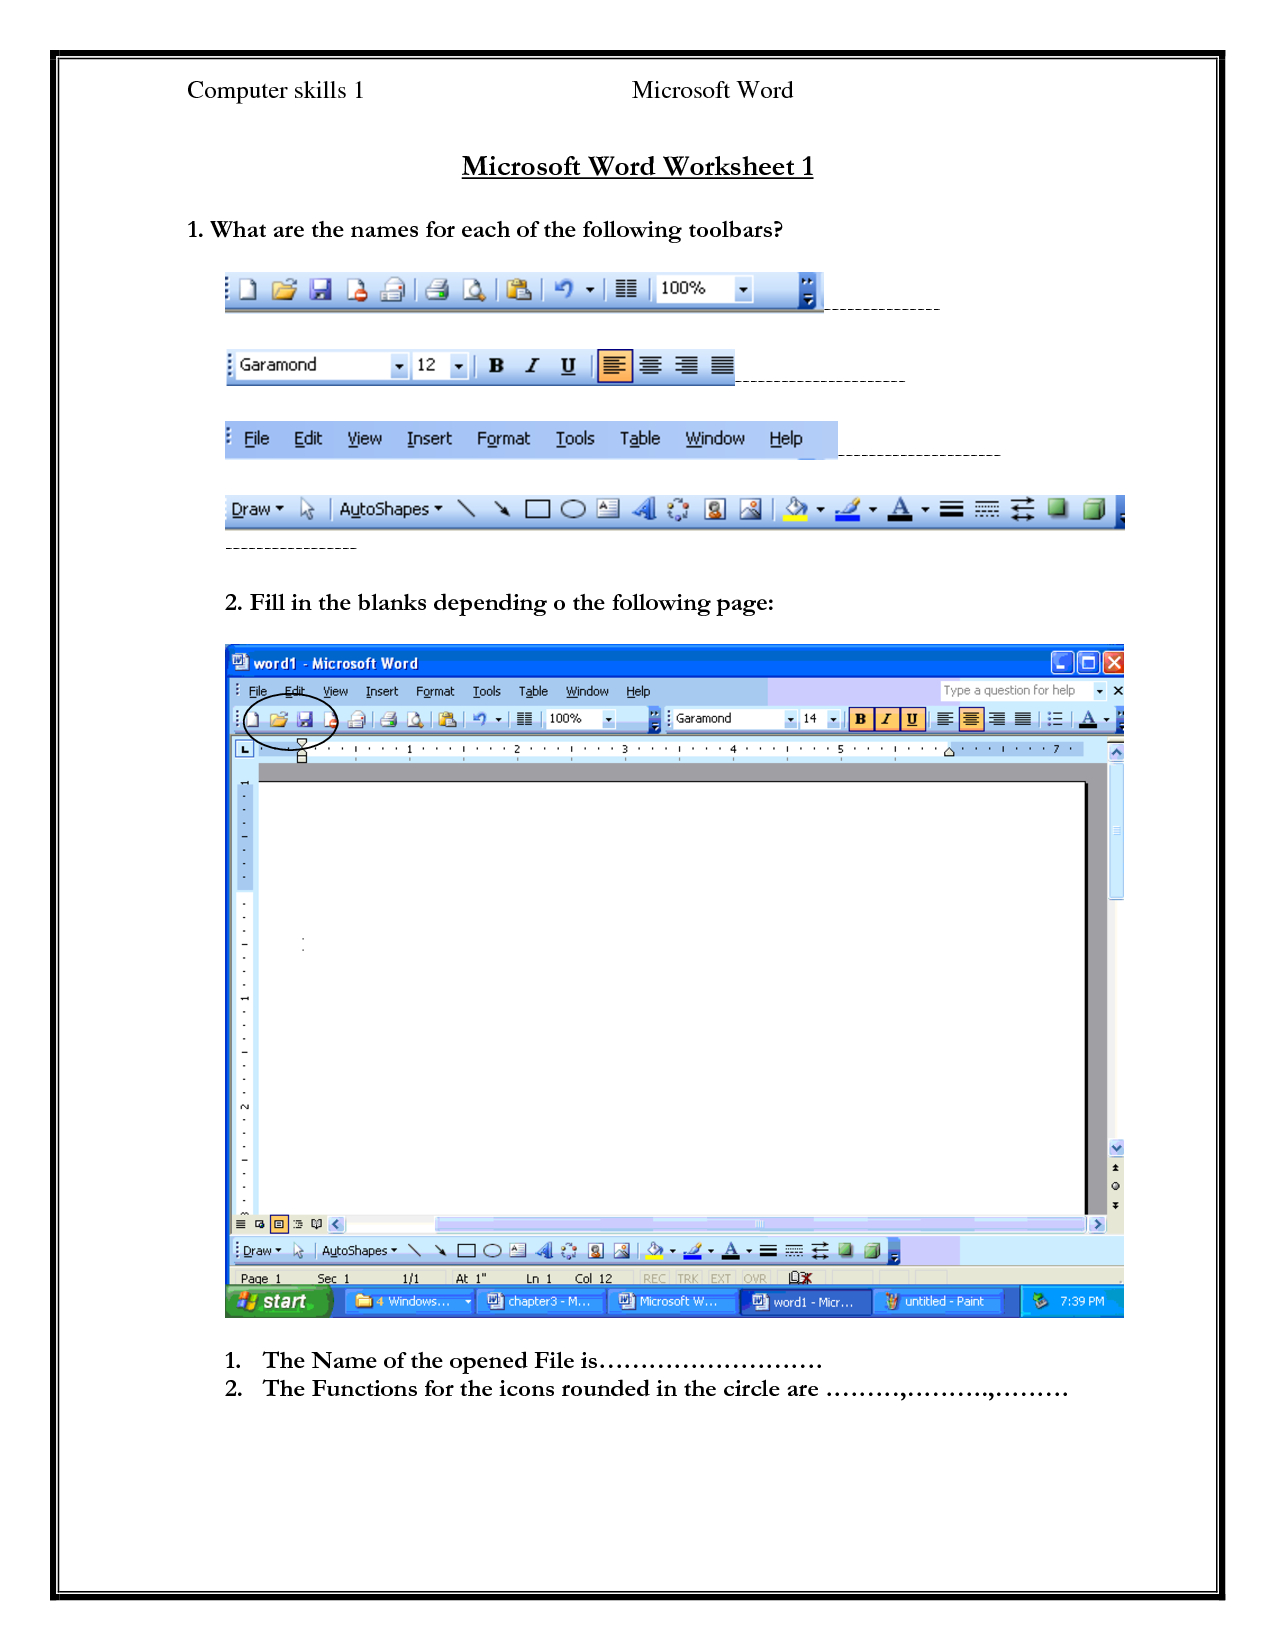 Computer Skills Worksheets | Computer Skills 1 Microsoft Word | Parts Of A Computer Worksheet Printable